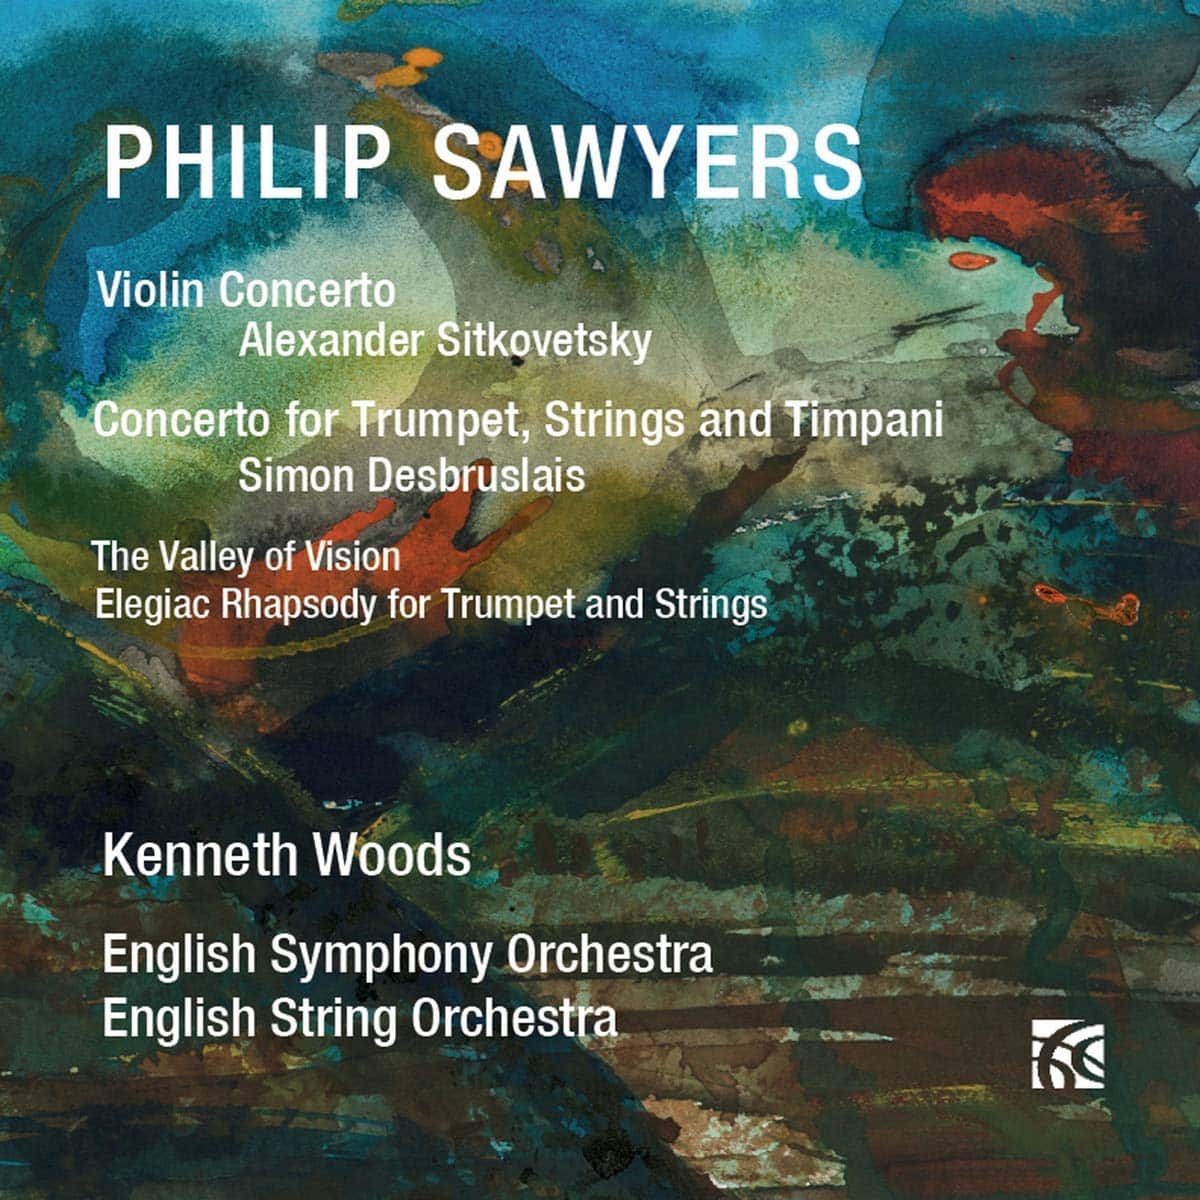 CD Review – 5*'s from Birmingham Post on Philip Sawyers Violin and Trumpet Concerti